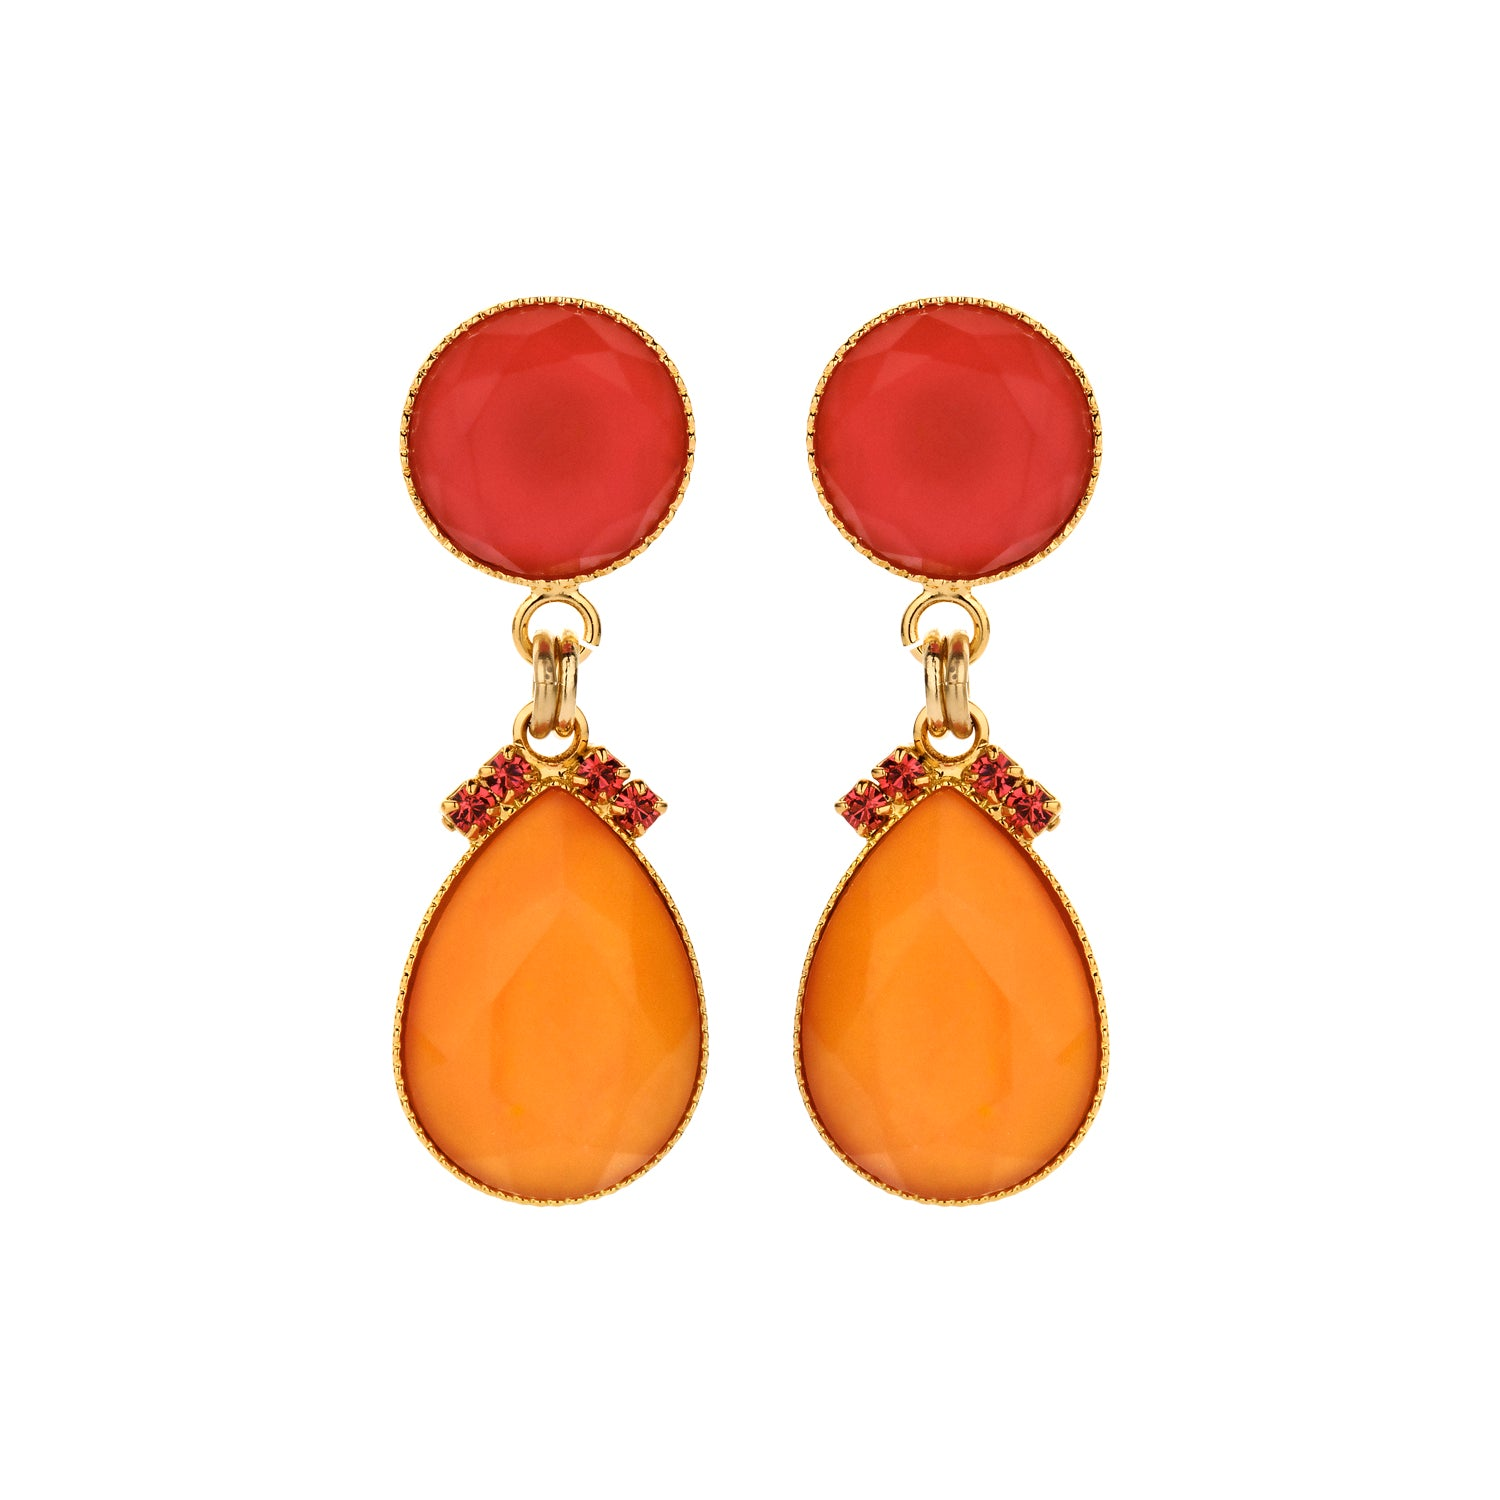 2 drops earring mini orange